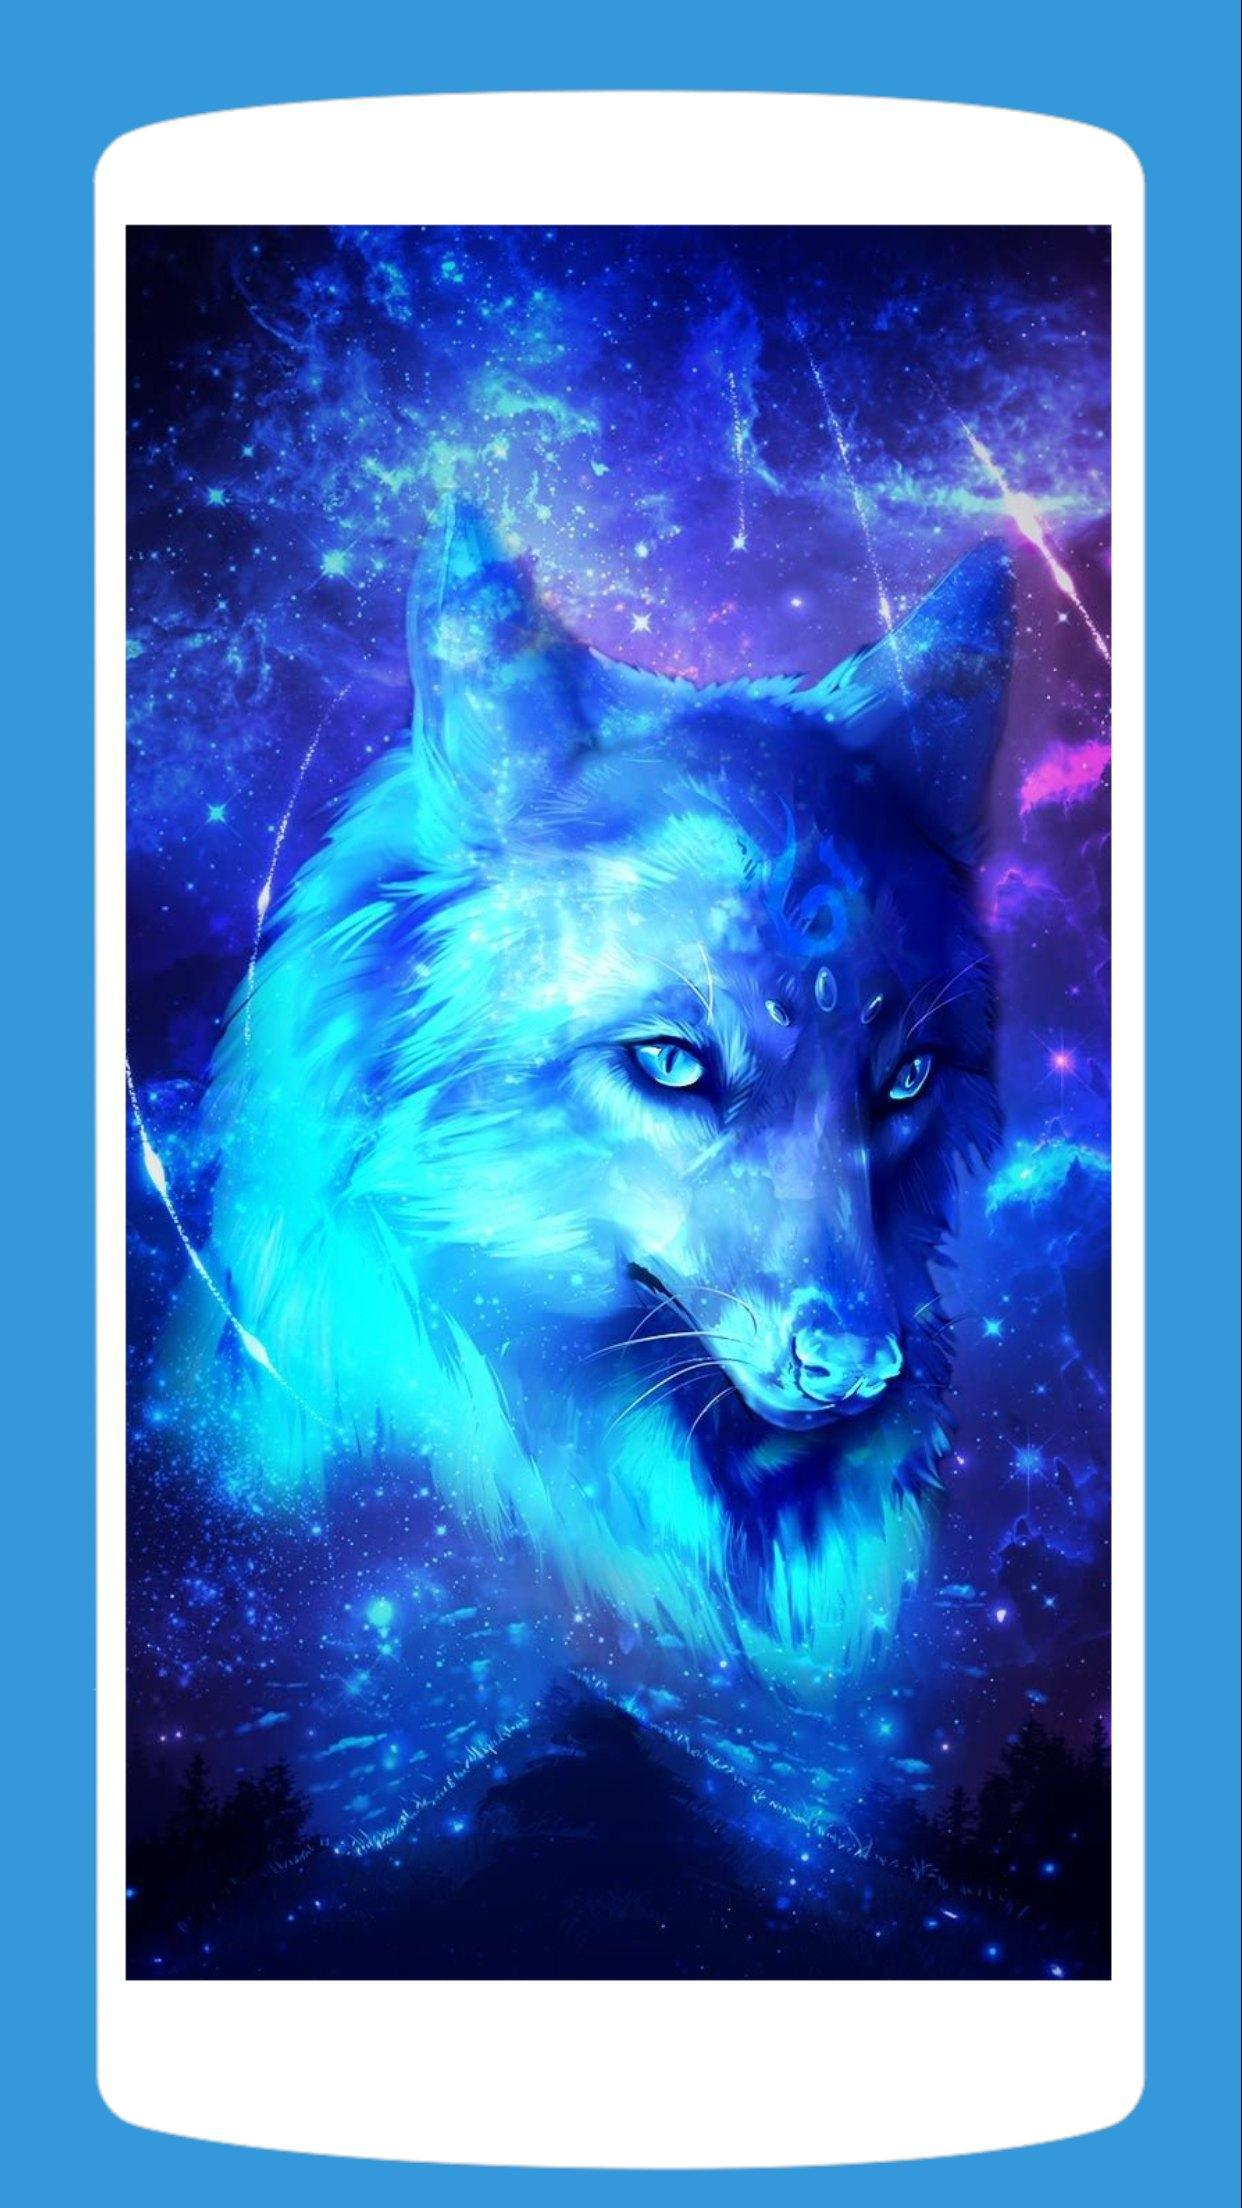 Galaxy Wolf Wallpaper Hd 4k For Android Apk Download